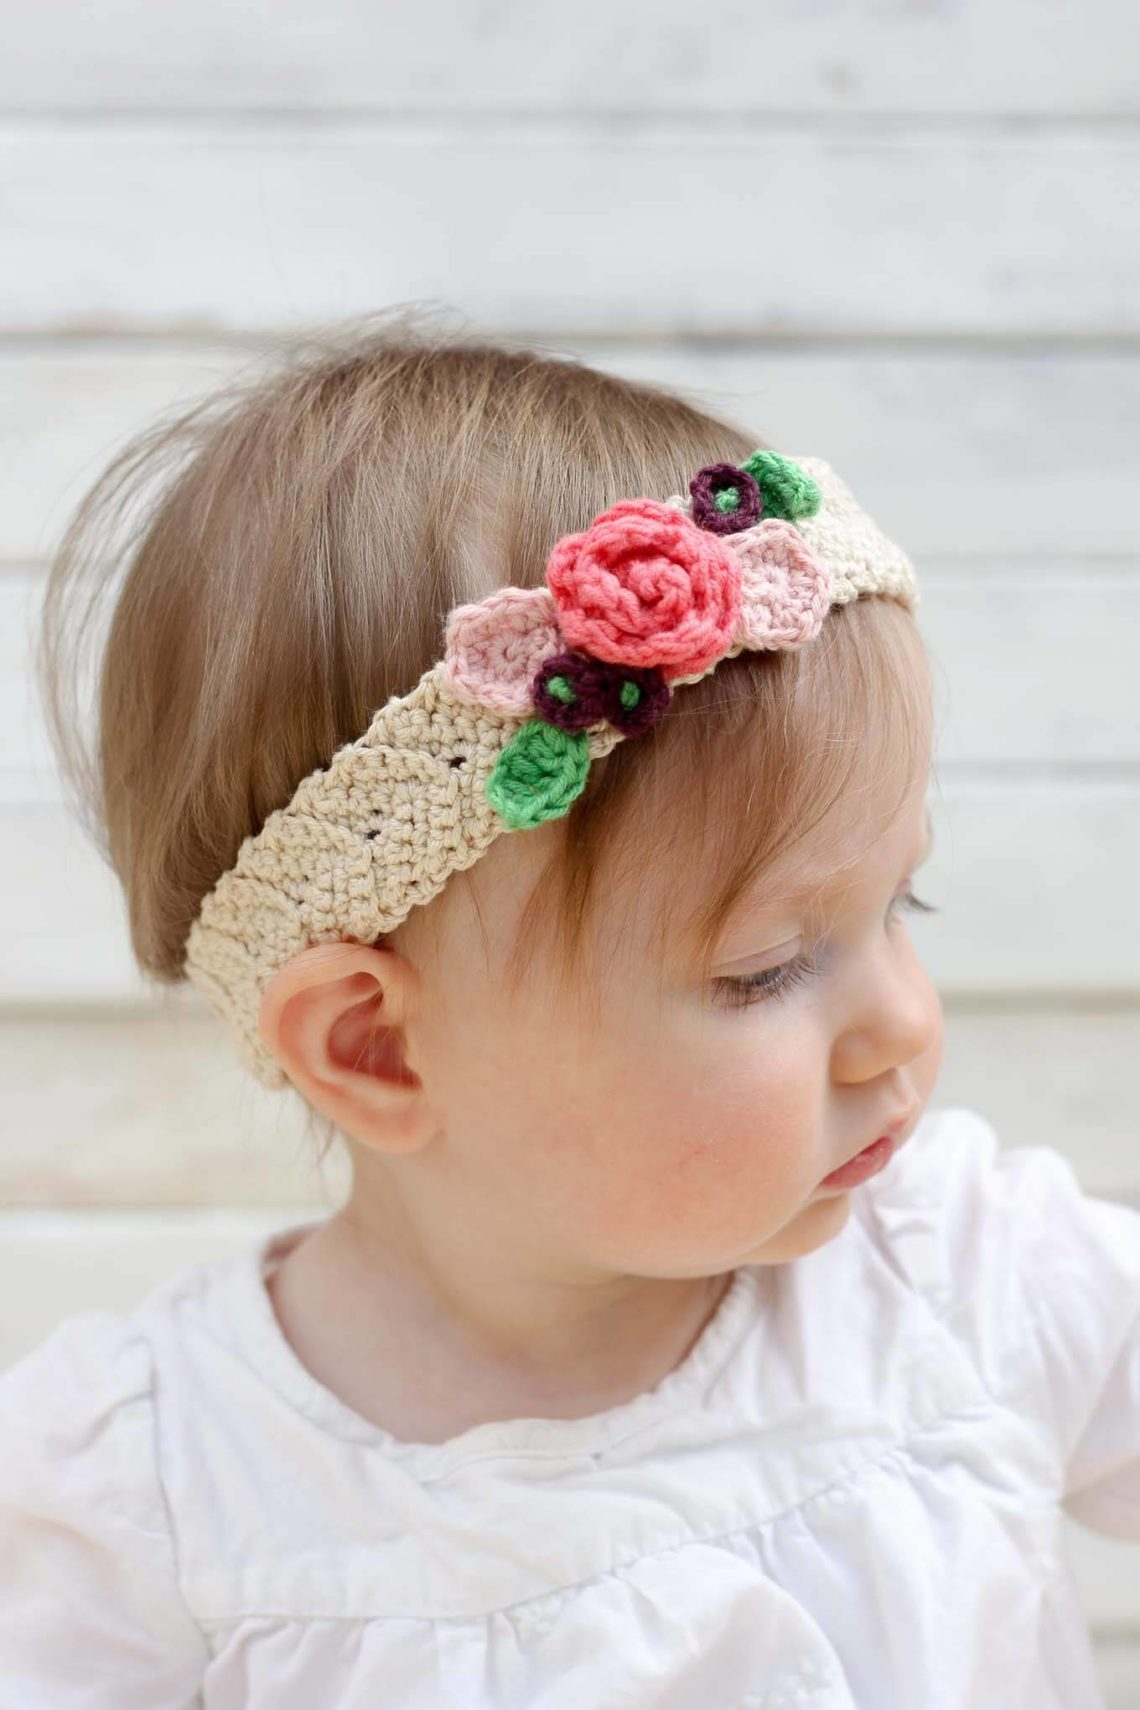 This free crochet headband pattern with flowers is surprisingly easy and it makes an adorable headpiece for a young flower girl in a wedding (or a bohemian beauty of any age)! Sizes include newborn, baby, toddler, child, teen and adult. | MakeAndDoCrew.com